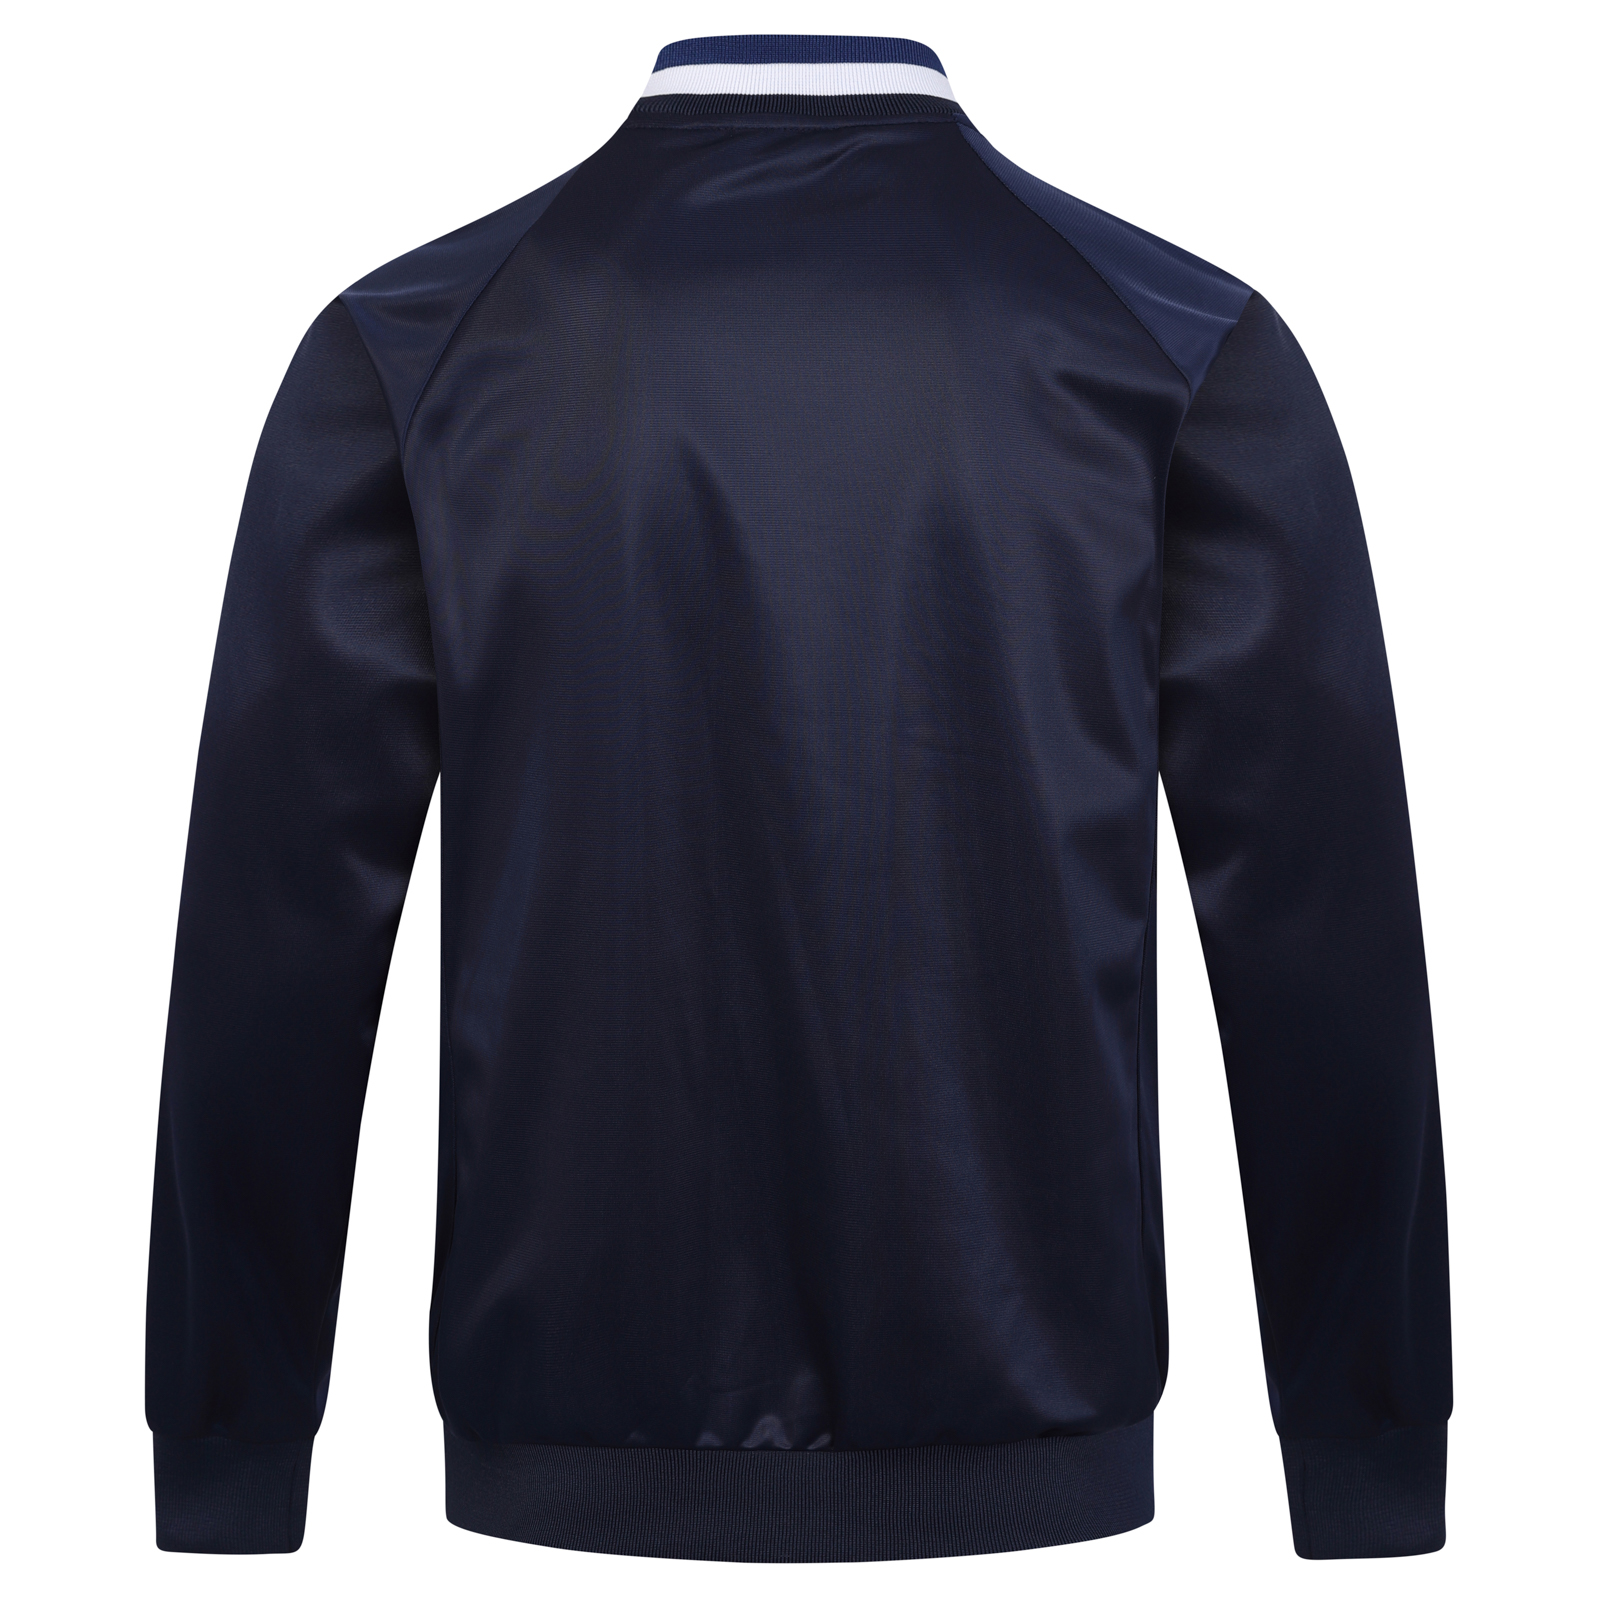 survêtement homme officiels Veste FC Vetements de adidas